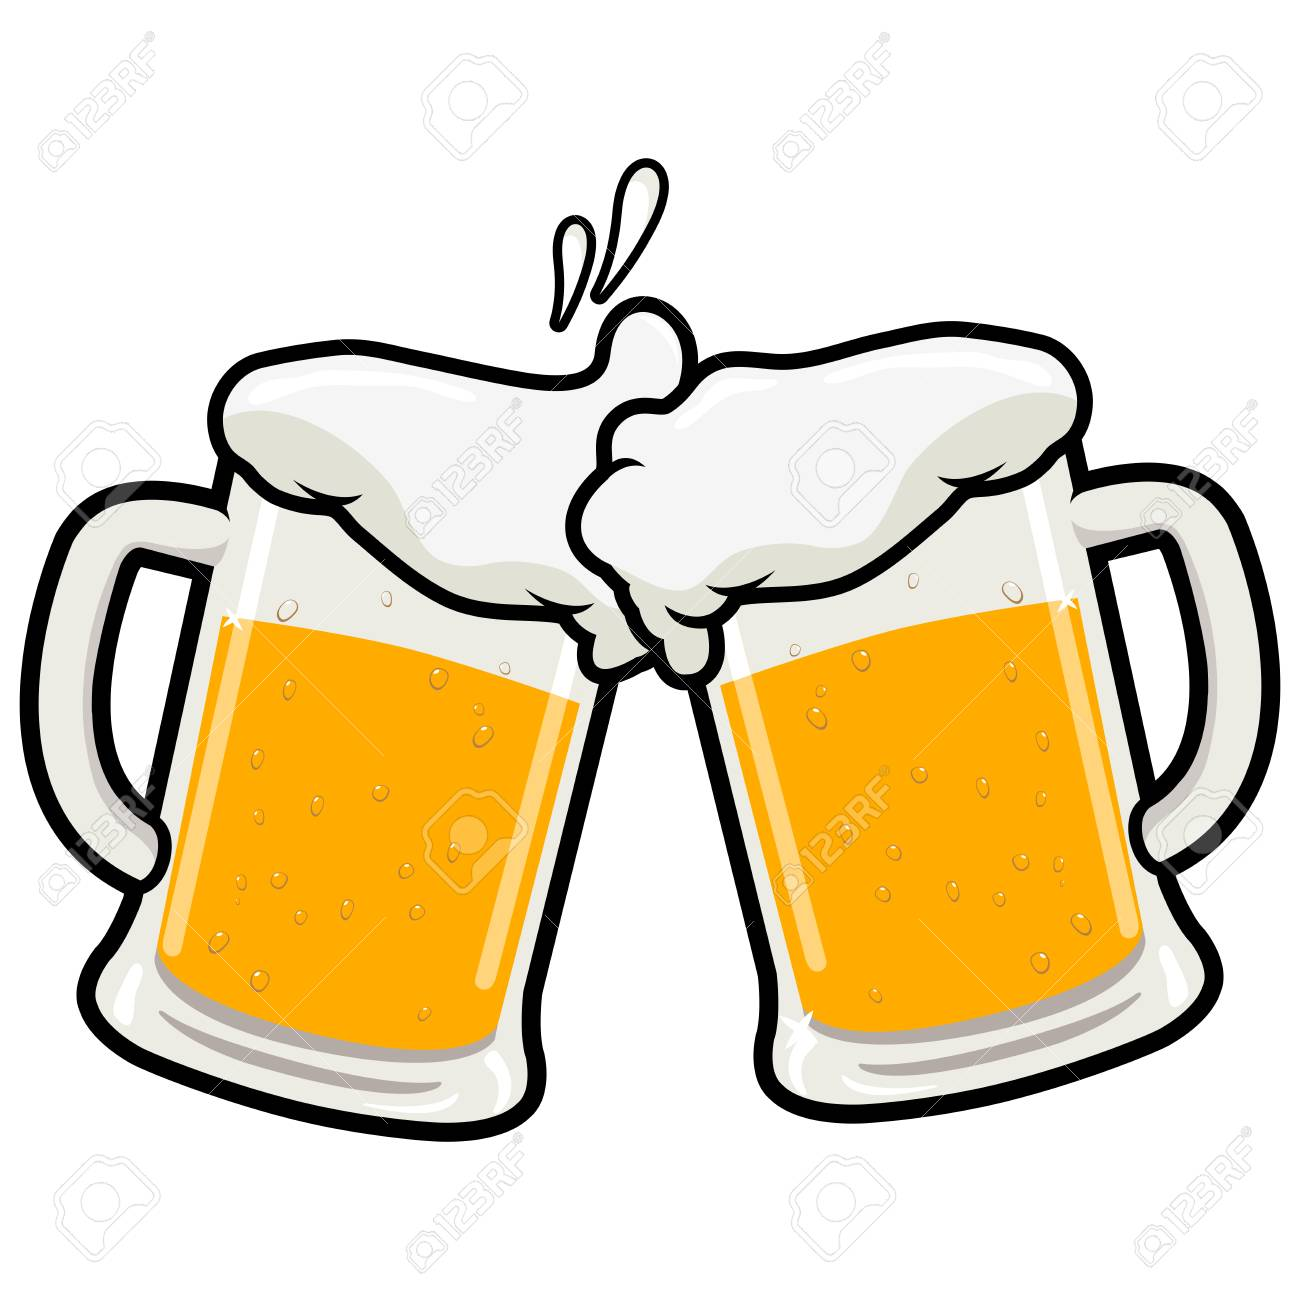 Two full beer mugs on a beer toasting concept vector illustration - 89712494